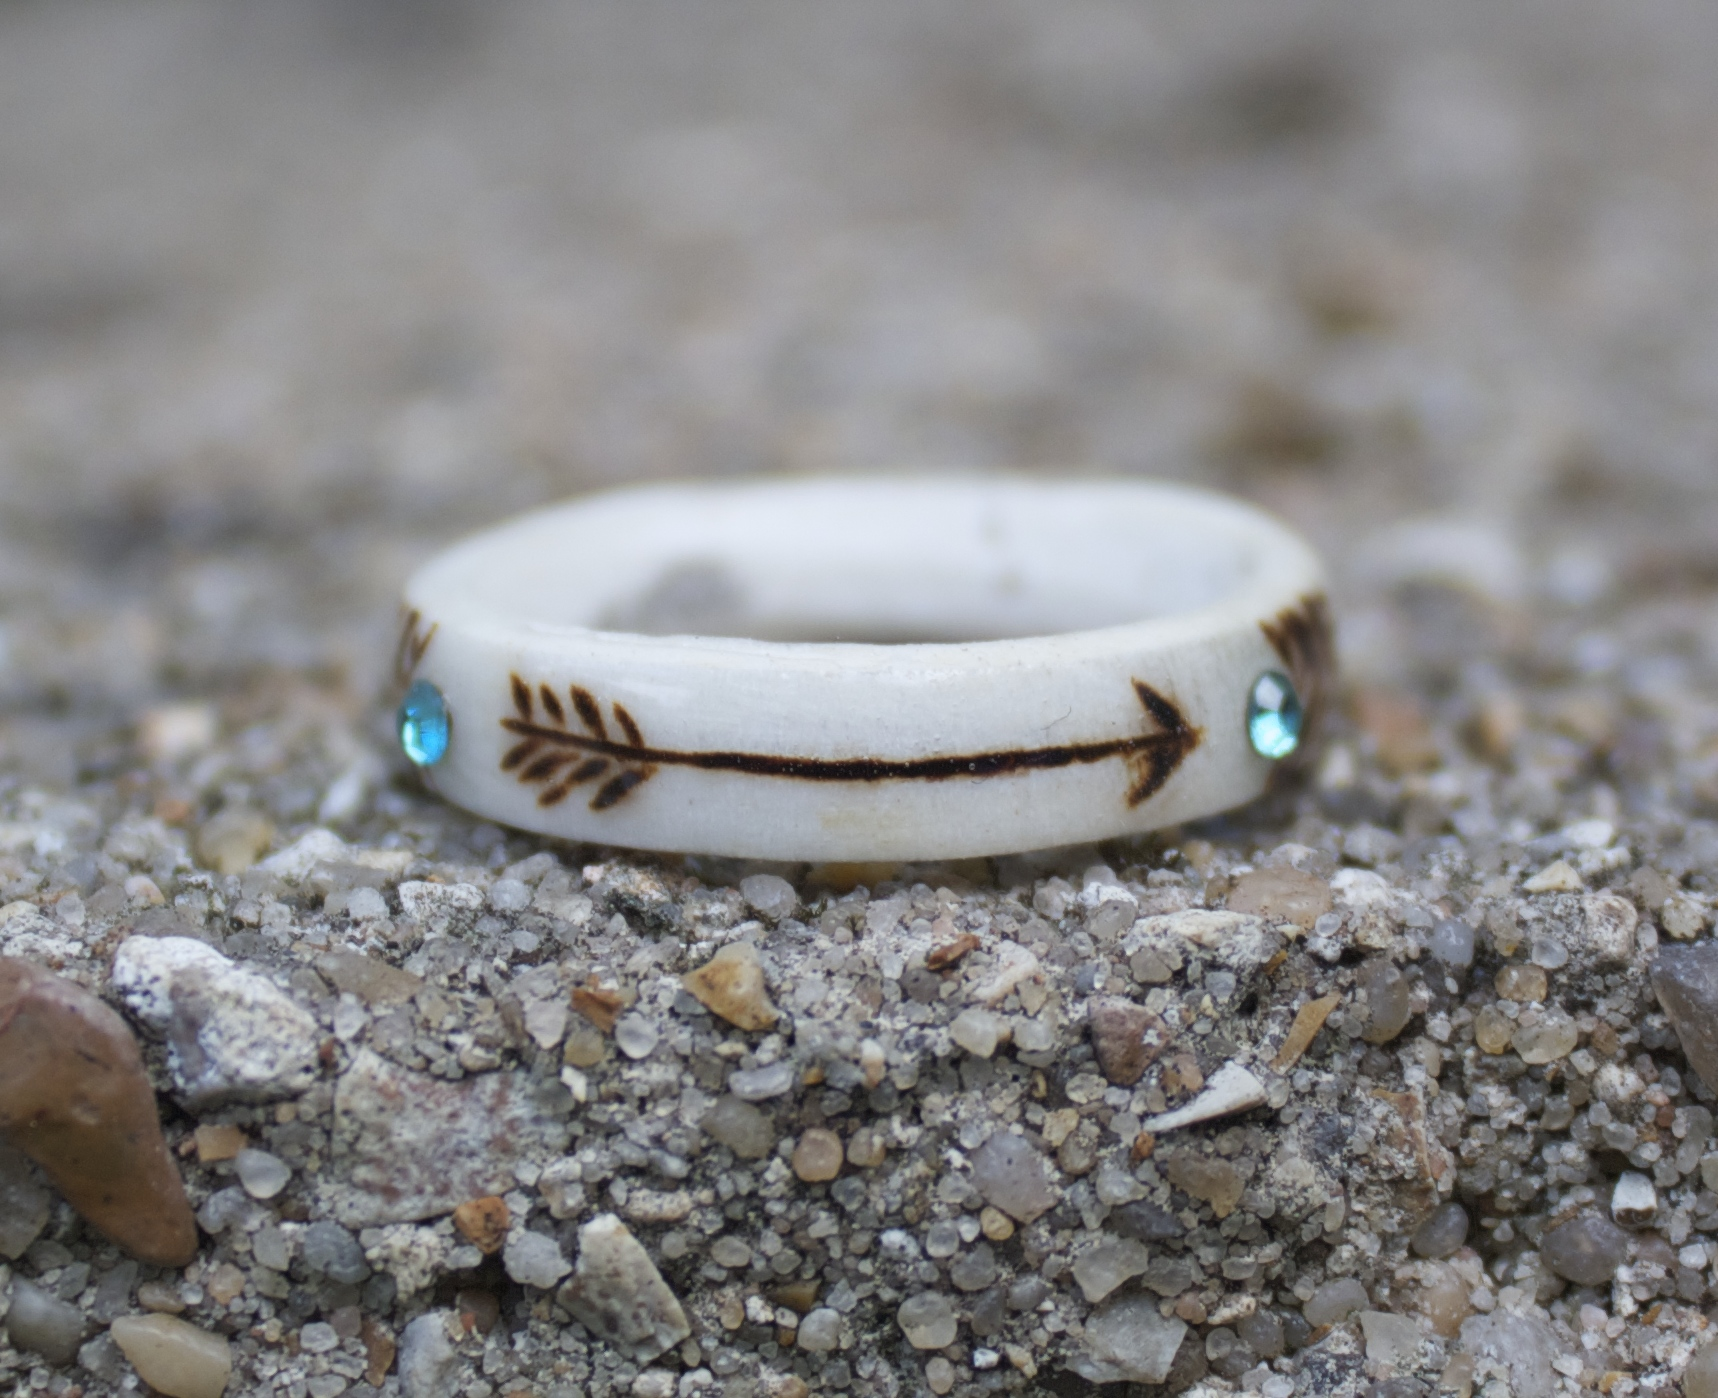 How To Make A Ring Out Of Deer Antler